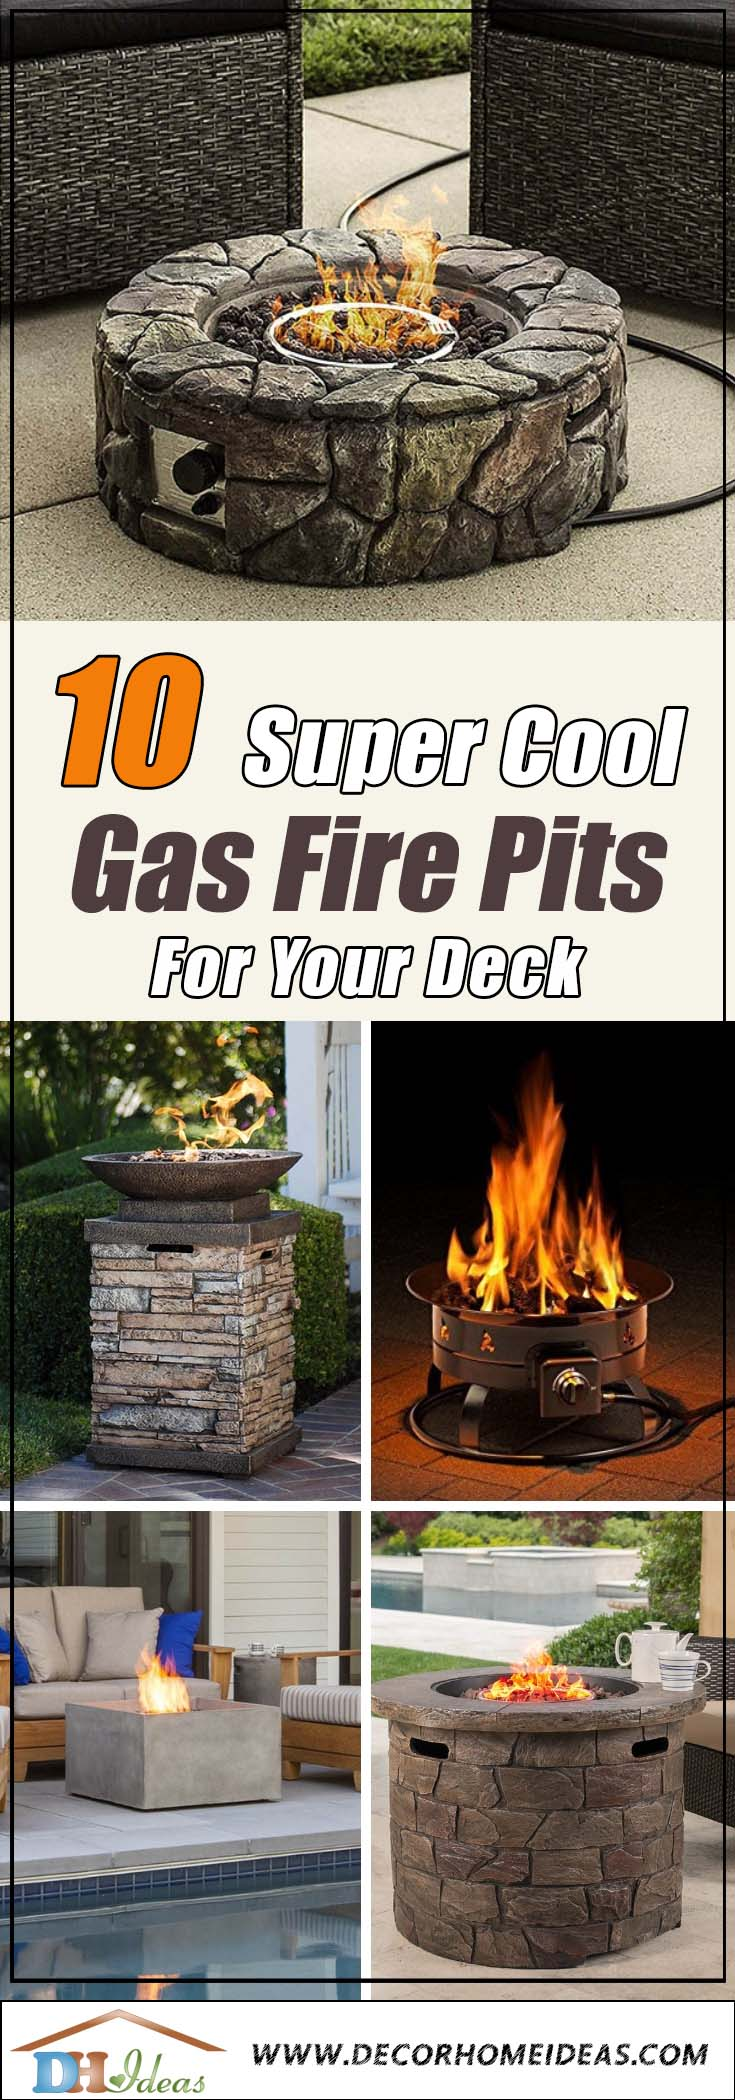 10 Best Gas Fire Pits For Deck #firepit #gasfirepit #propanefirepit #firepitdesign #decorhomeideas